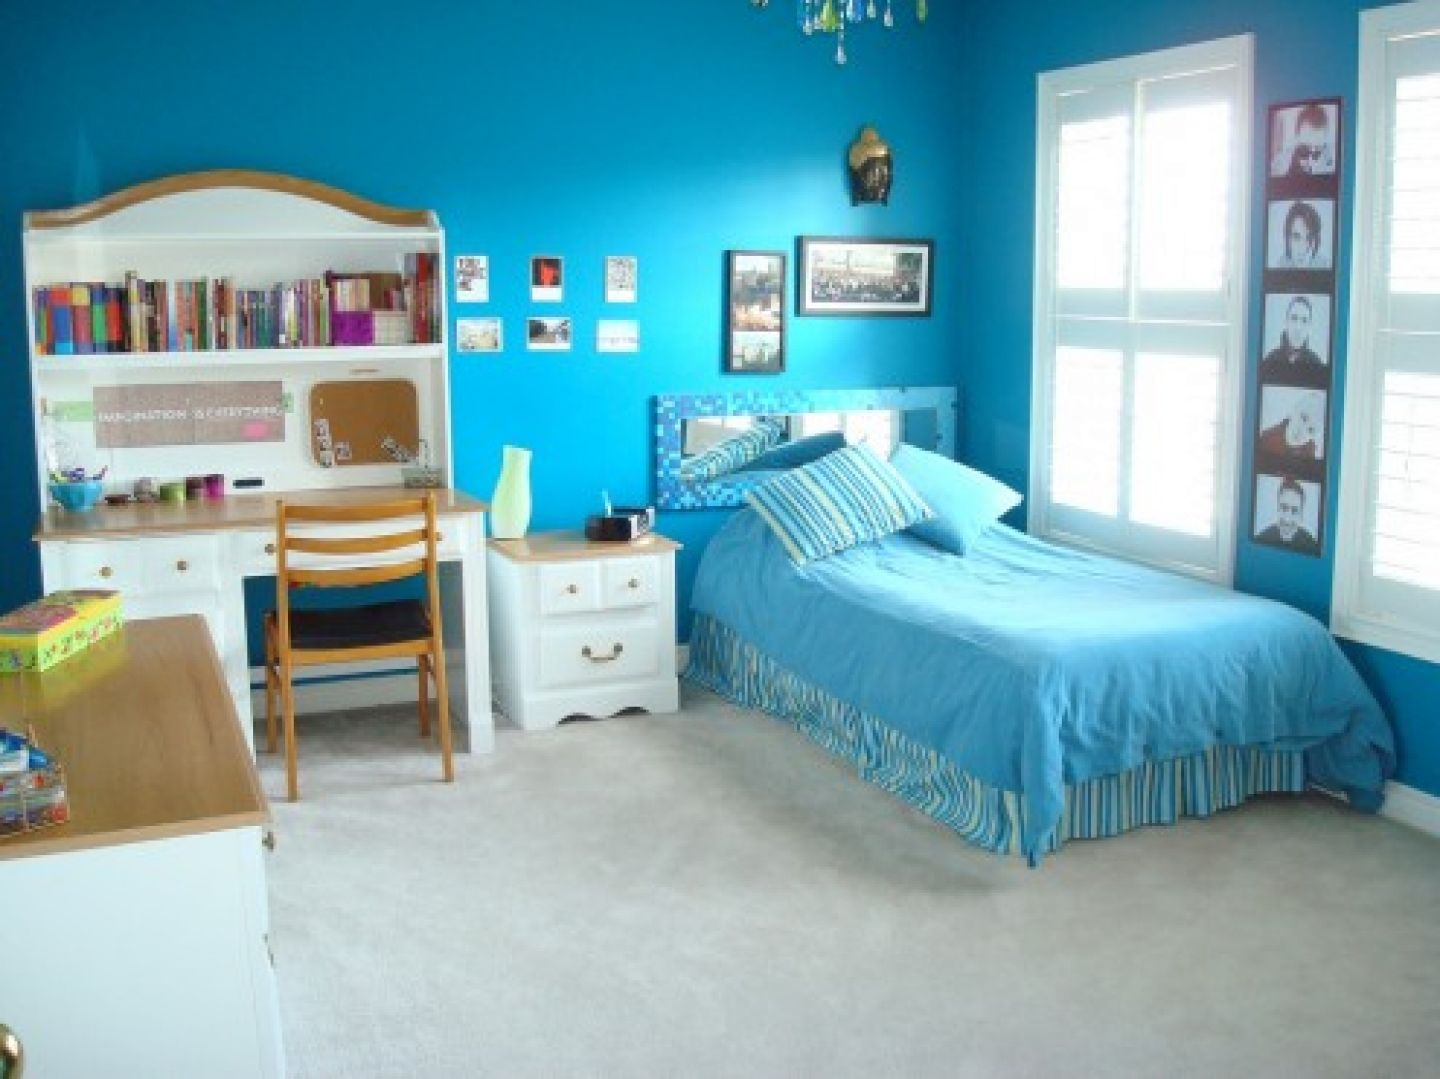 Blue bedroom decor for girls - Awesome Teen Girl Bedroom Decorating Ideas With Blue Bedding